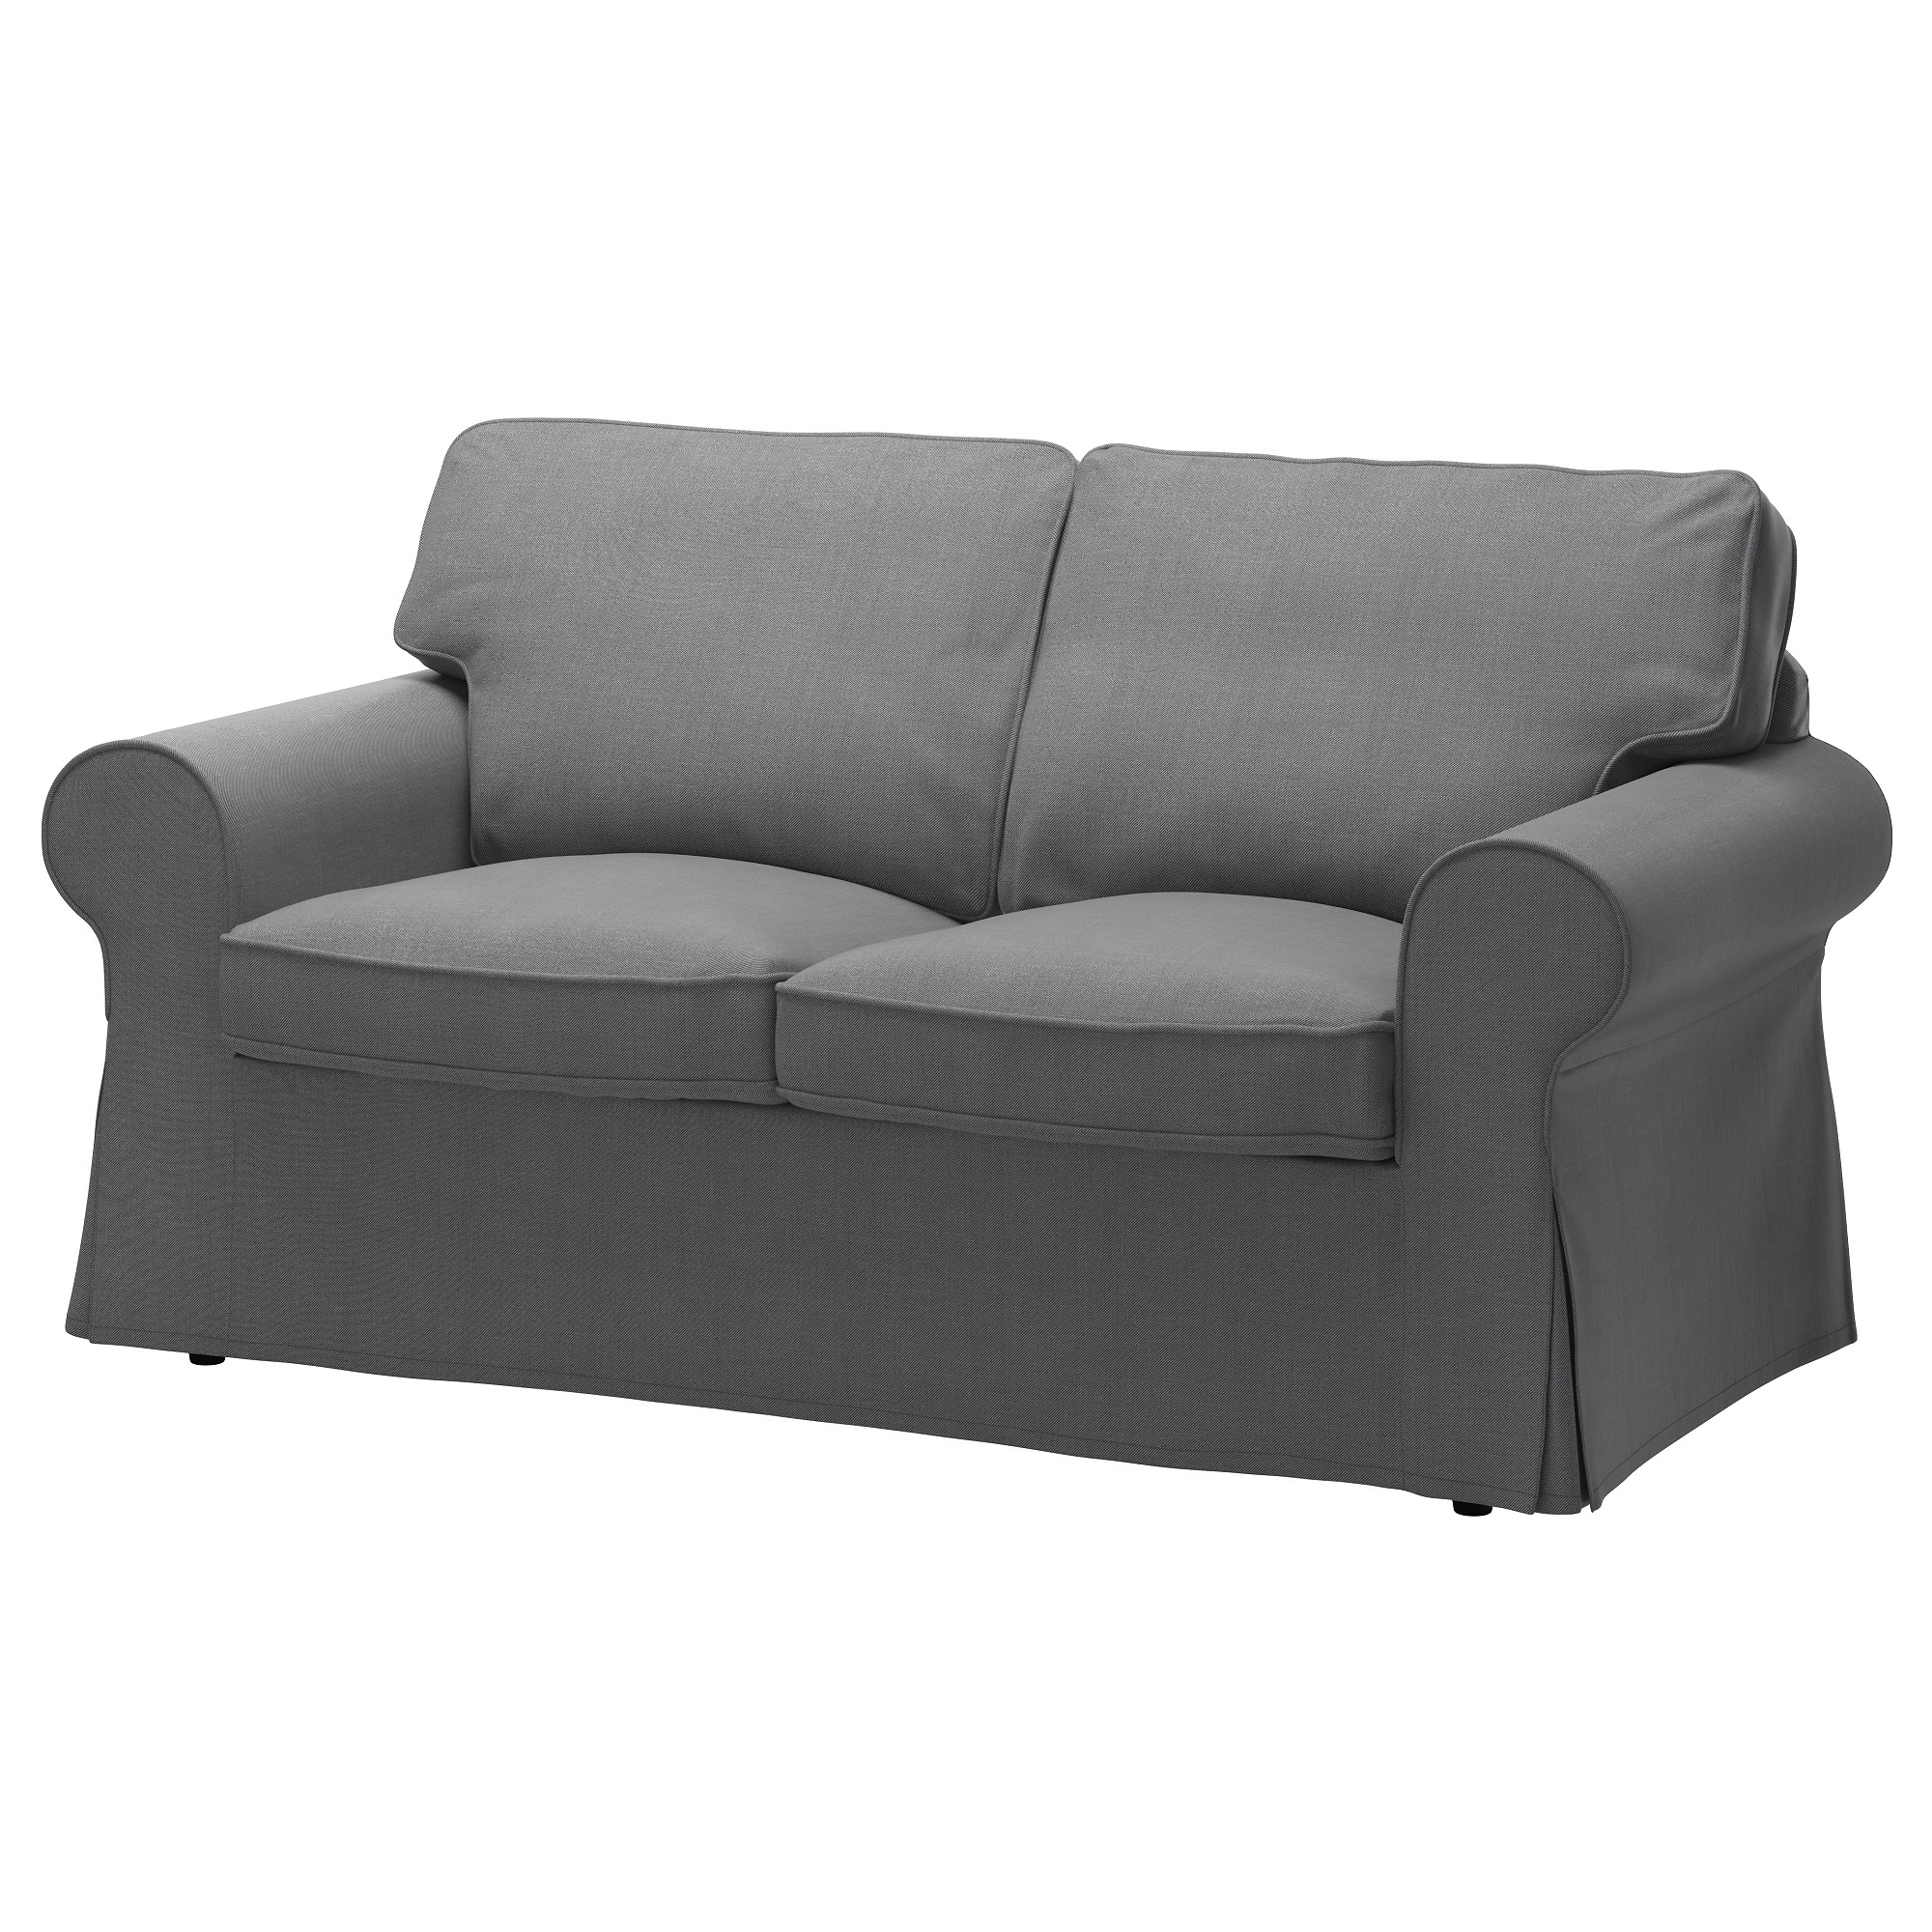 Sofas Loose Covers: 15+ Sofas With Removable Covers